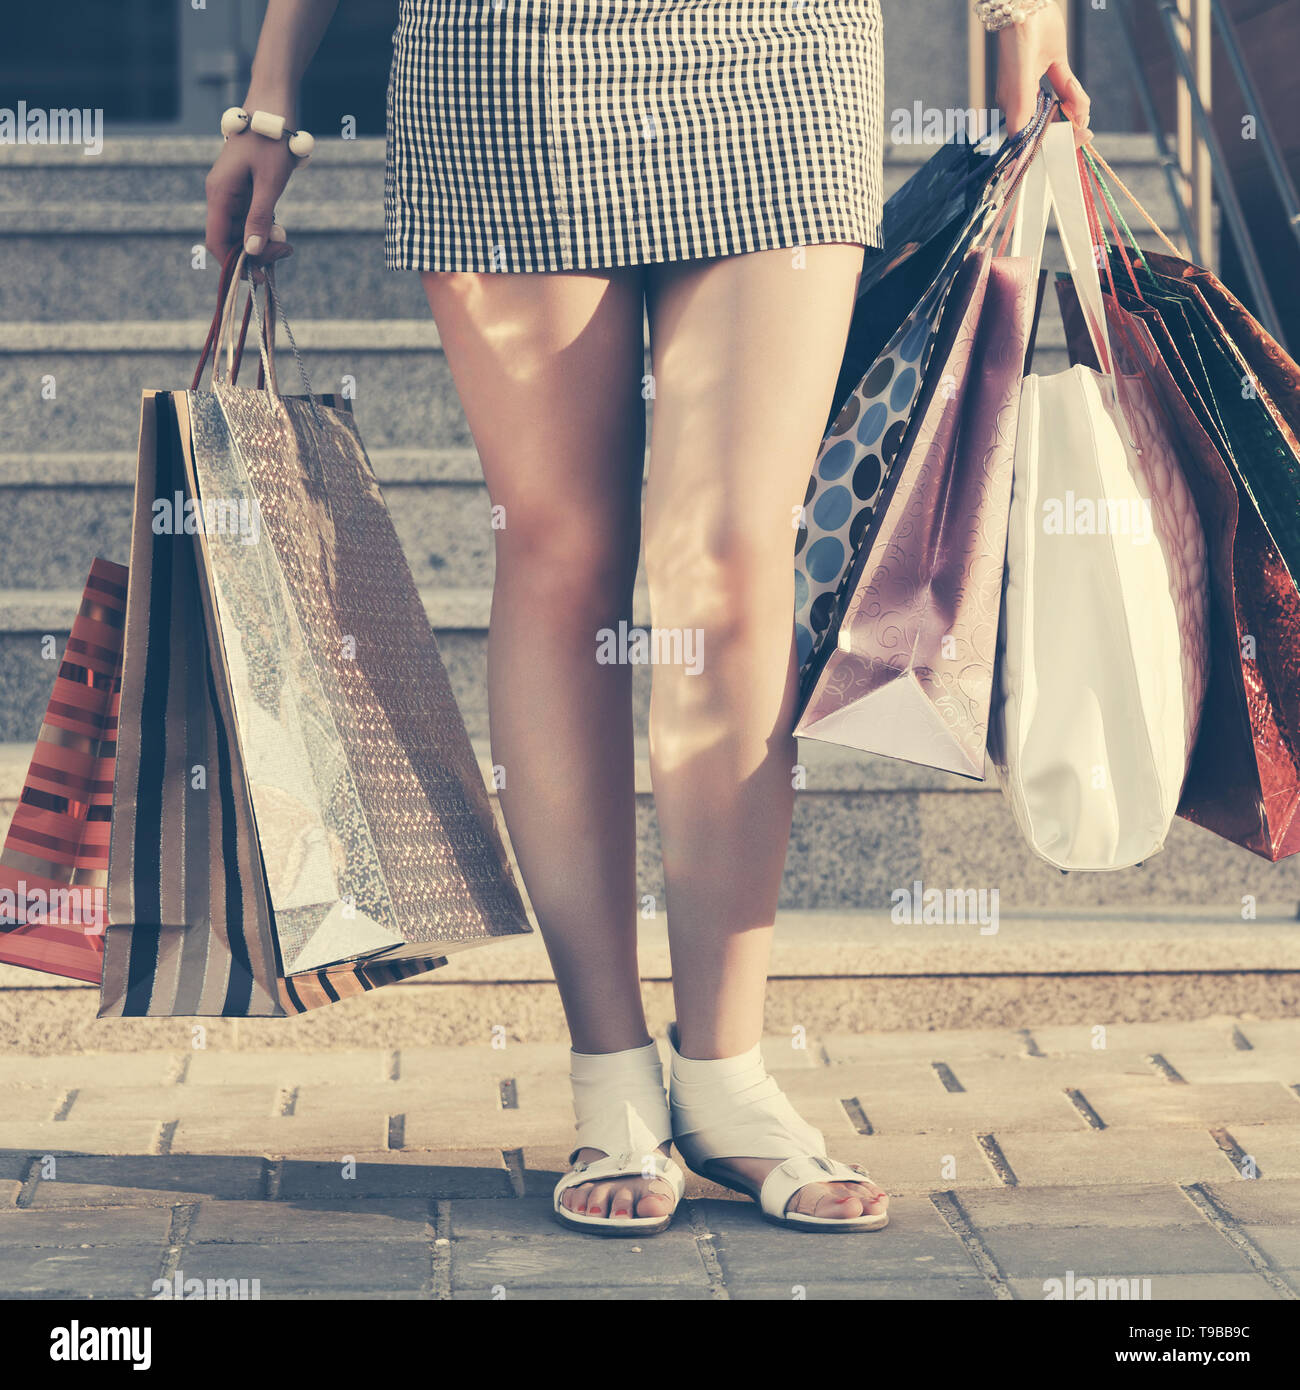 Woman with shopping bags against a mall steps - Stock Image